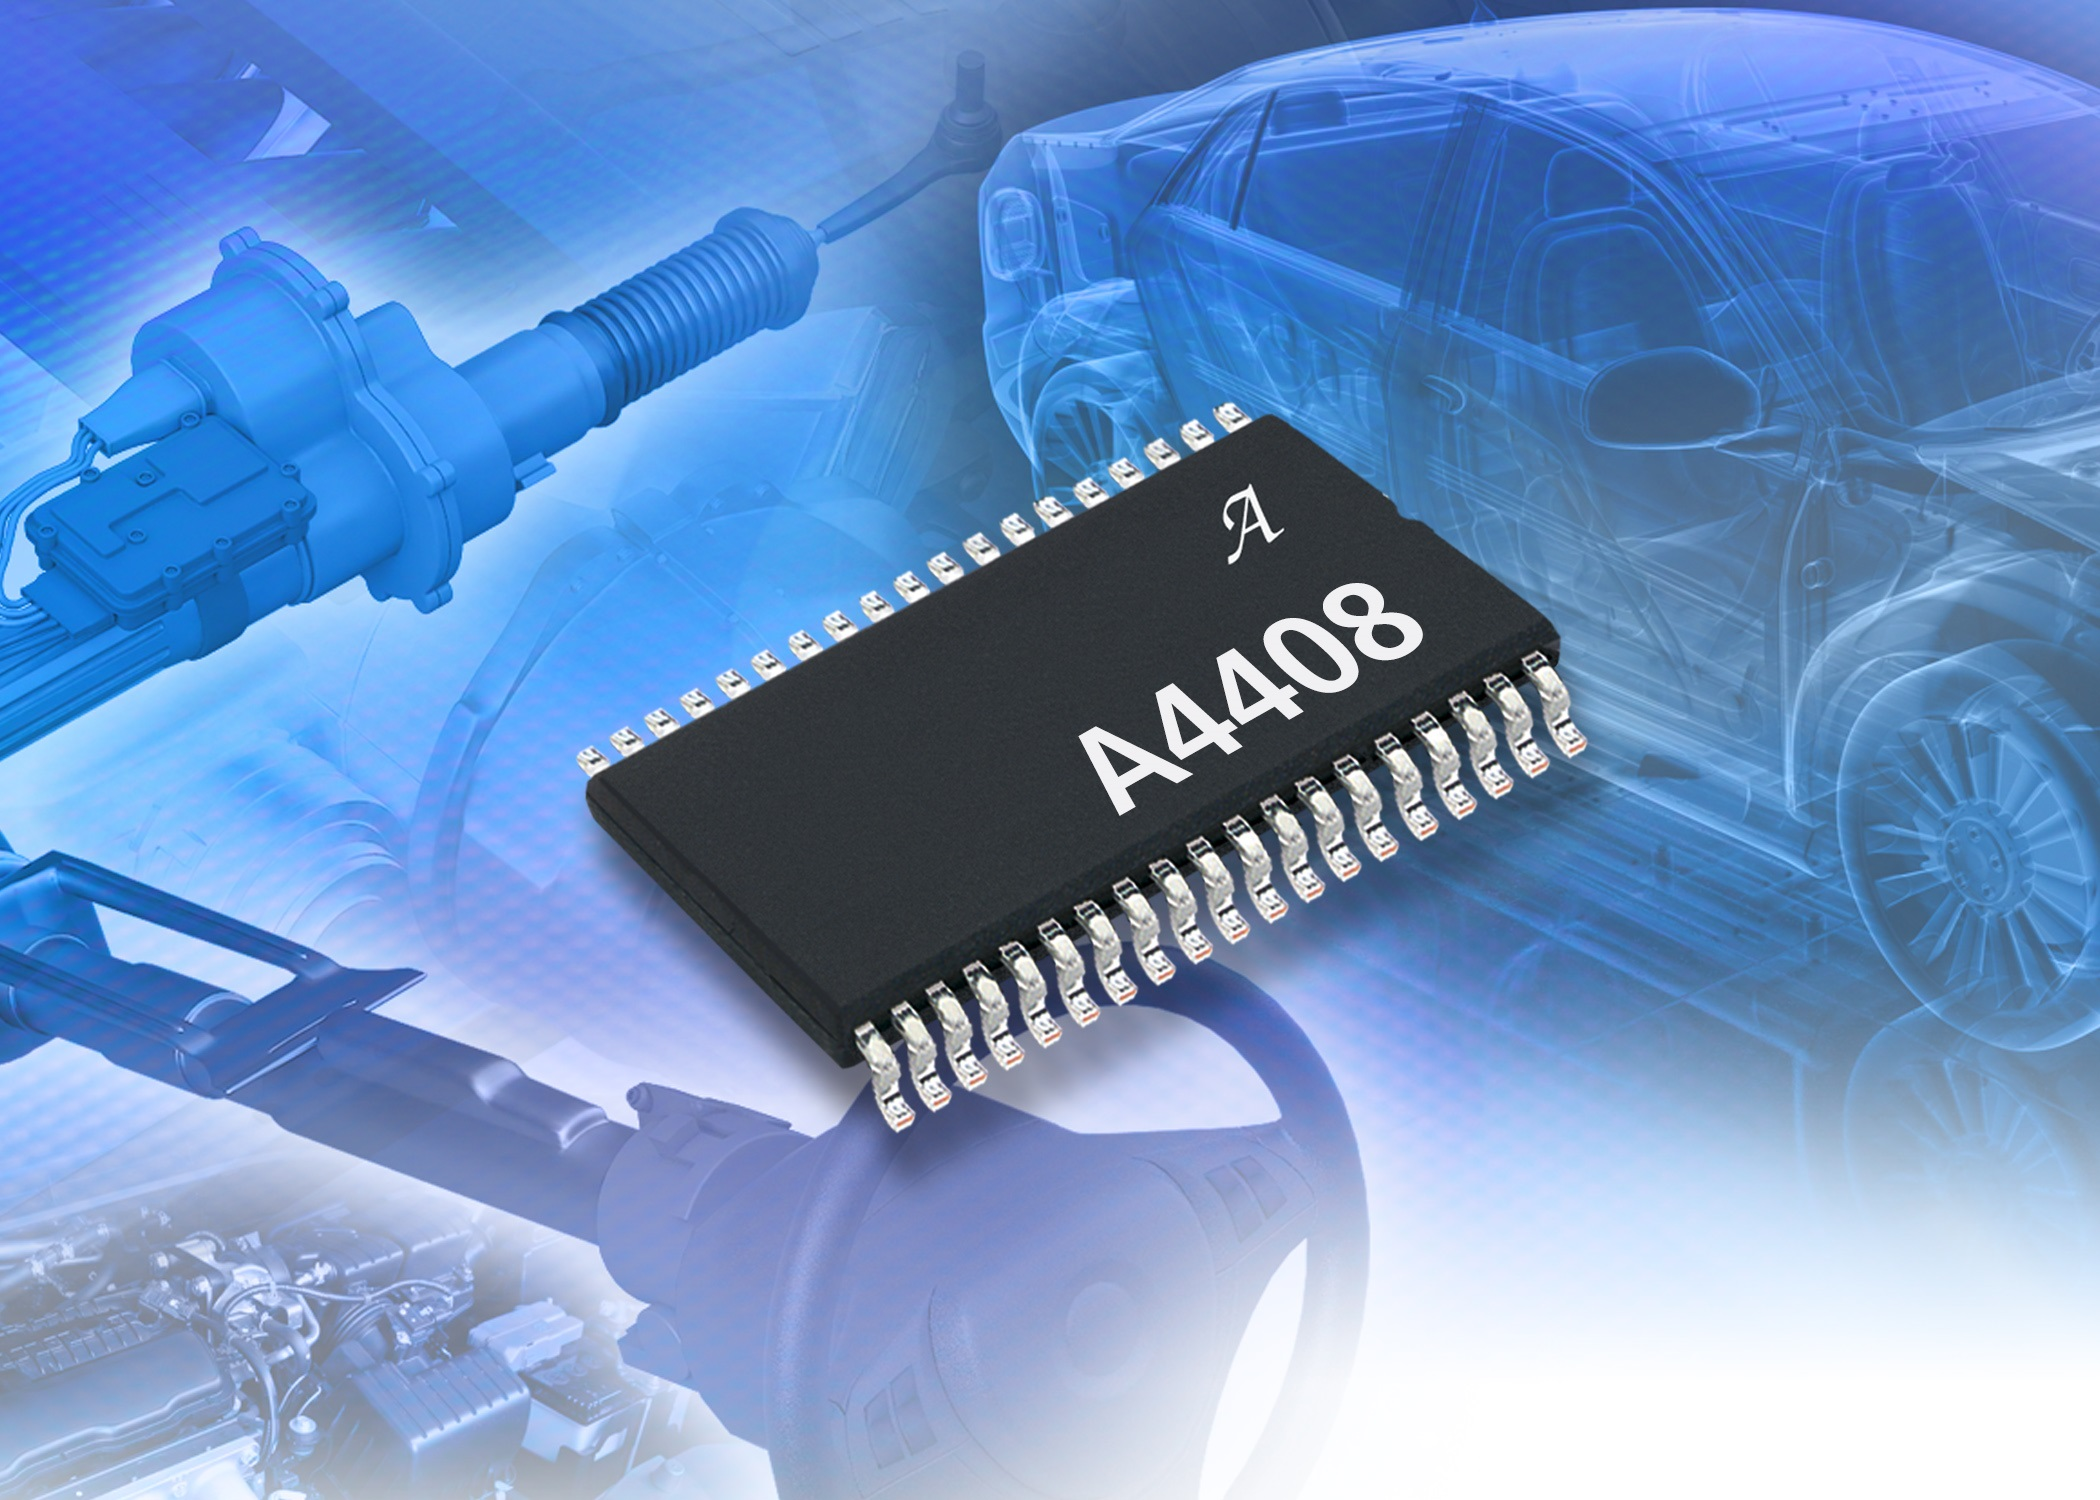 Allegro Microsystems Europe Ltd News From Escom The Circuit Uses A Halleffect Sensor Which Consists Of An Ic That Automotive Pmic Buck Boost Pre Regulator With Diagnostics